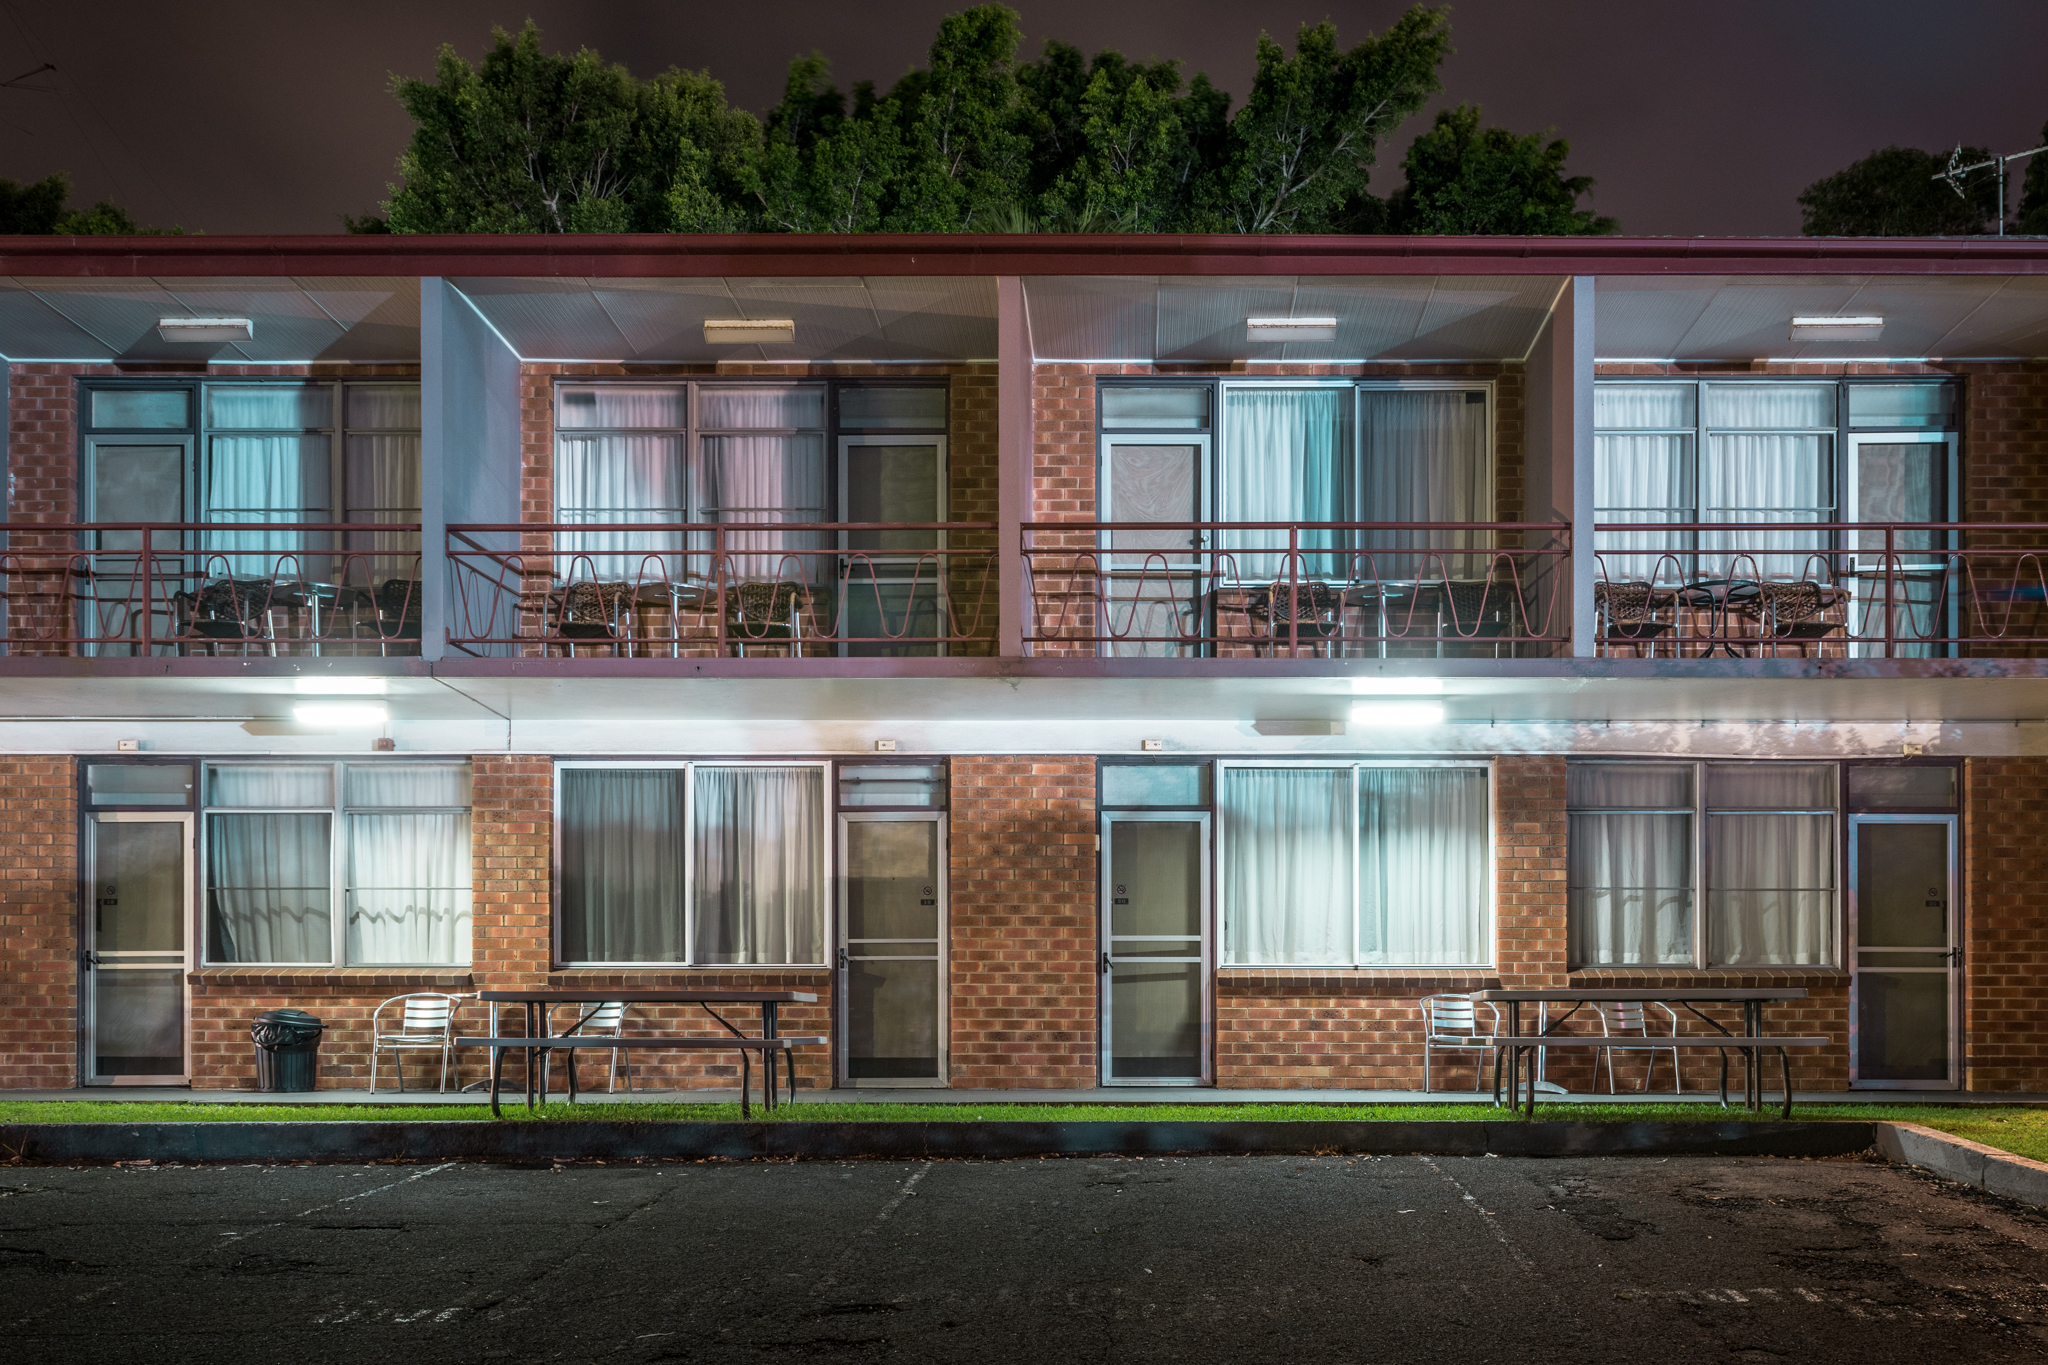 Flinders Motel, Wollongong | A 6-minute walk from North Wollongong train station, this low-key motel is also a 14-minute walk from North Wollongong Beach and 1.9 km from the WIN Entertainment Centre arena. Airy rooms feature flat-screen TVs, minifridges, and tea and coffeemaking facilities. Some add bunk beds. Amenities include complimentary parking, a Thai restaurant and a communal kitchenette, as well as a guest laundry and a BBQ area. $140 Per night.